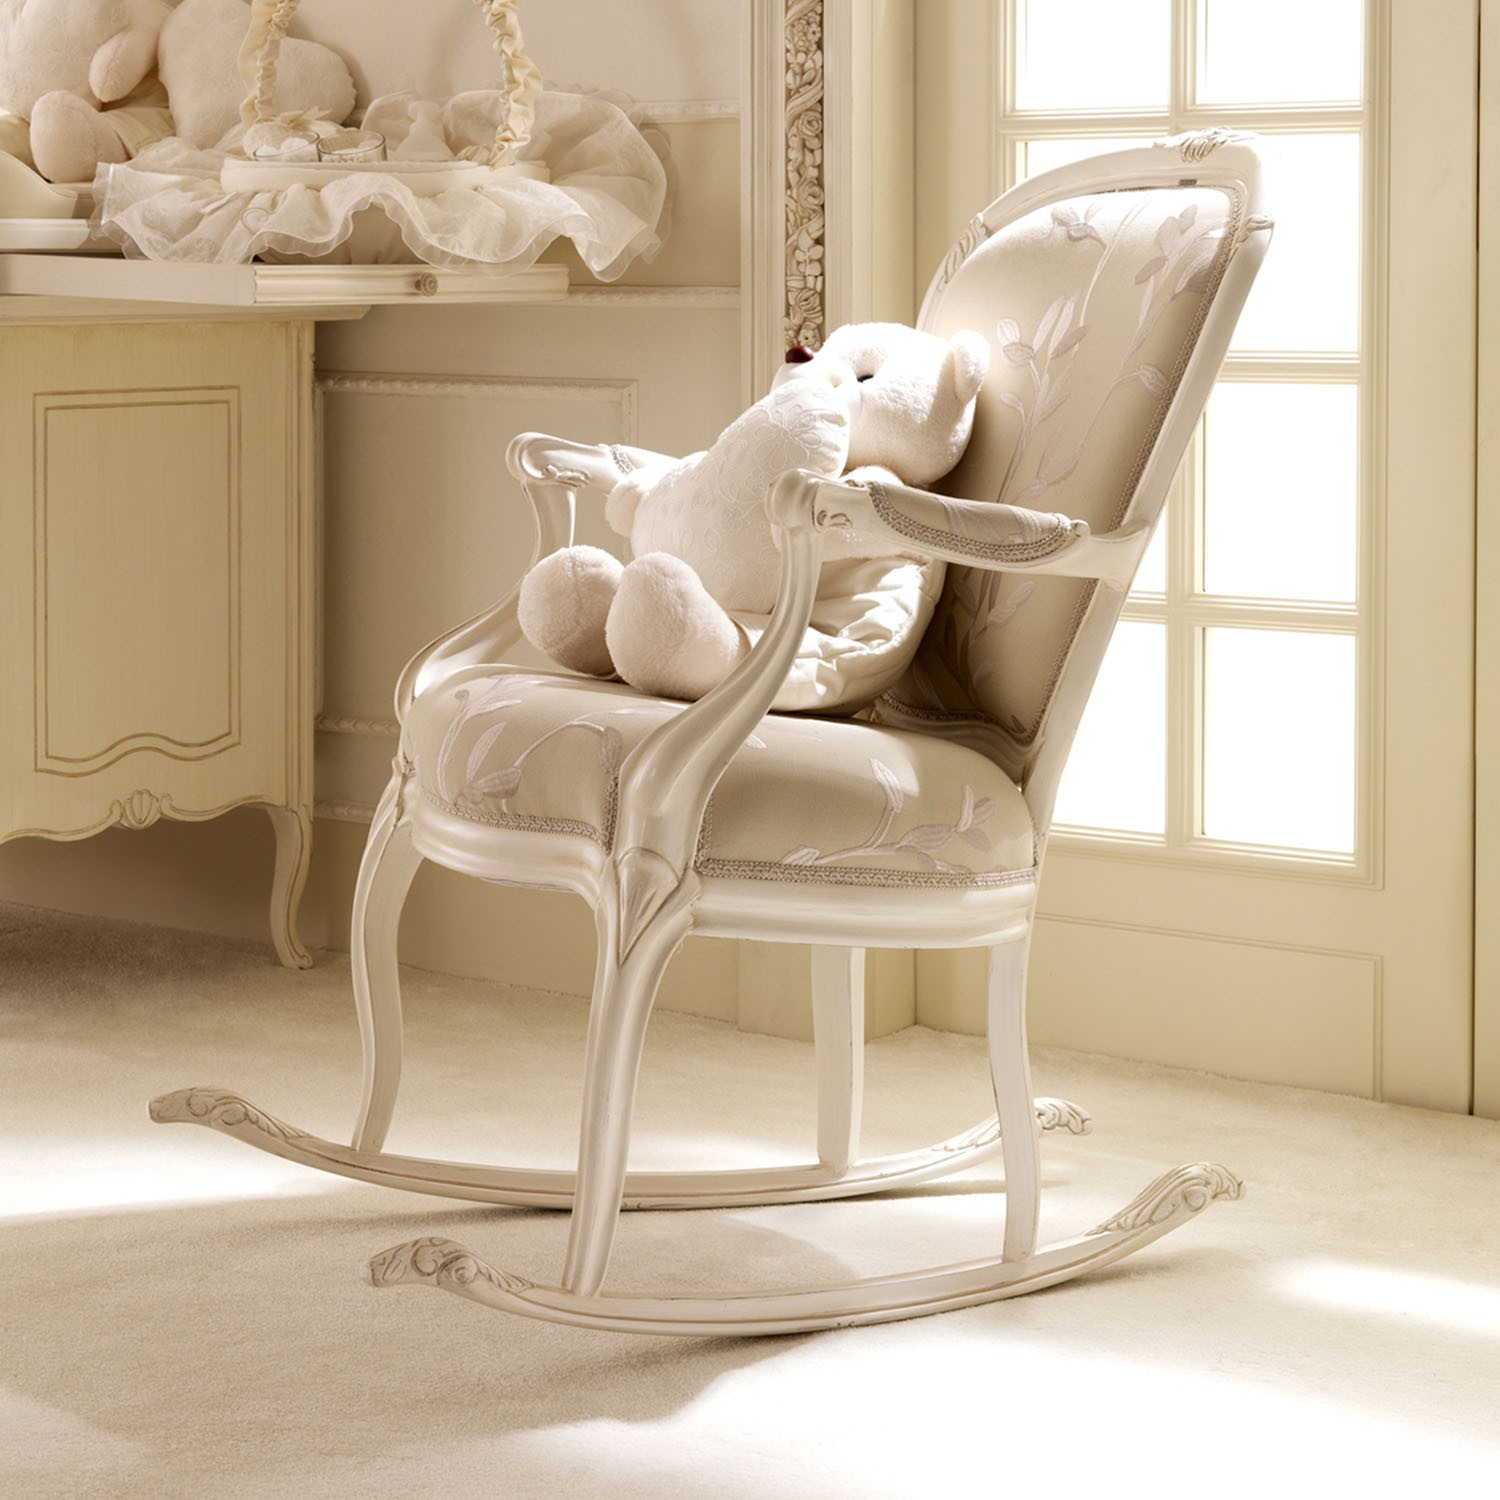 small rocking chairs childrens desk chair john lewis notte by fatata